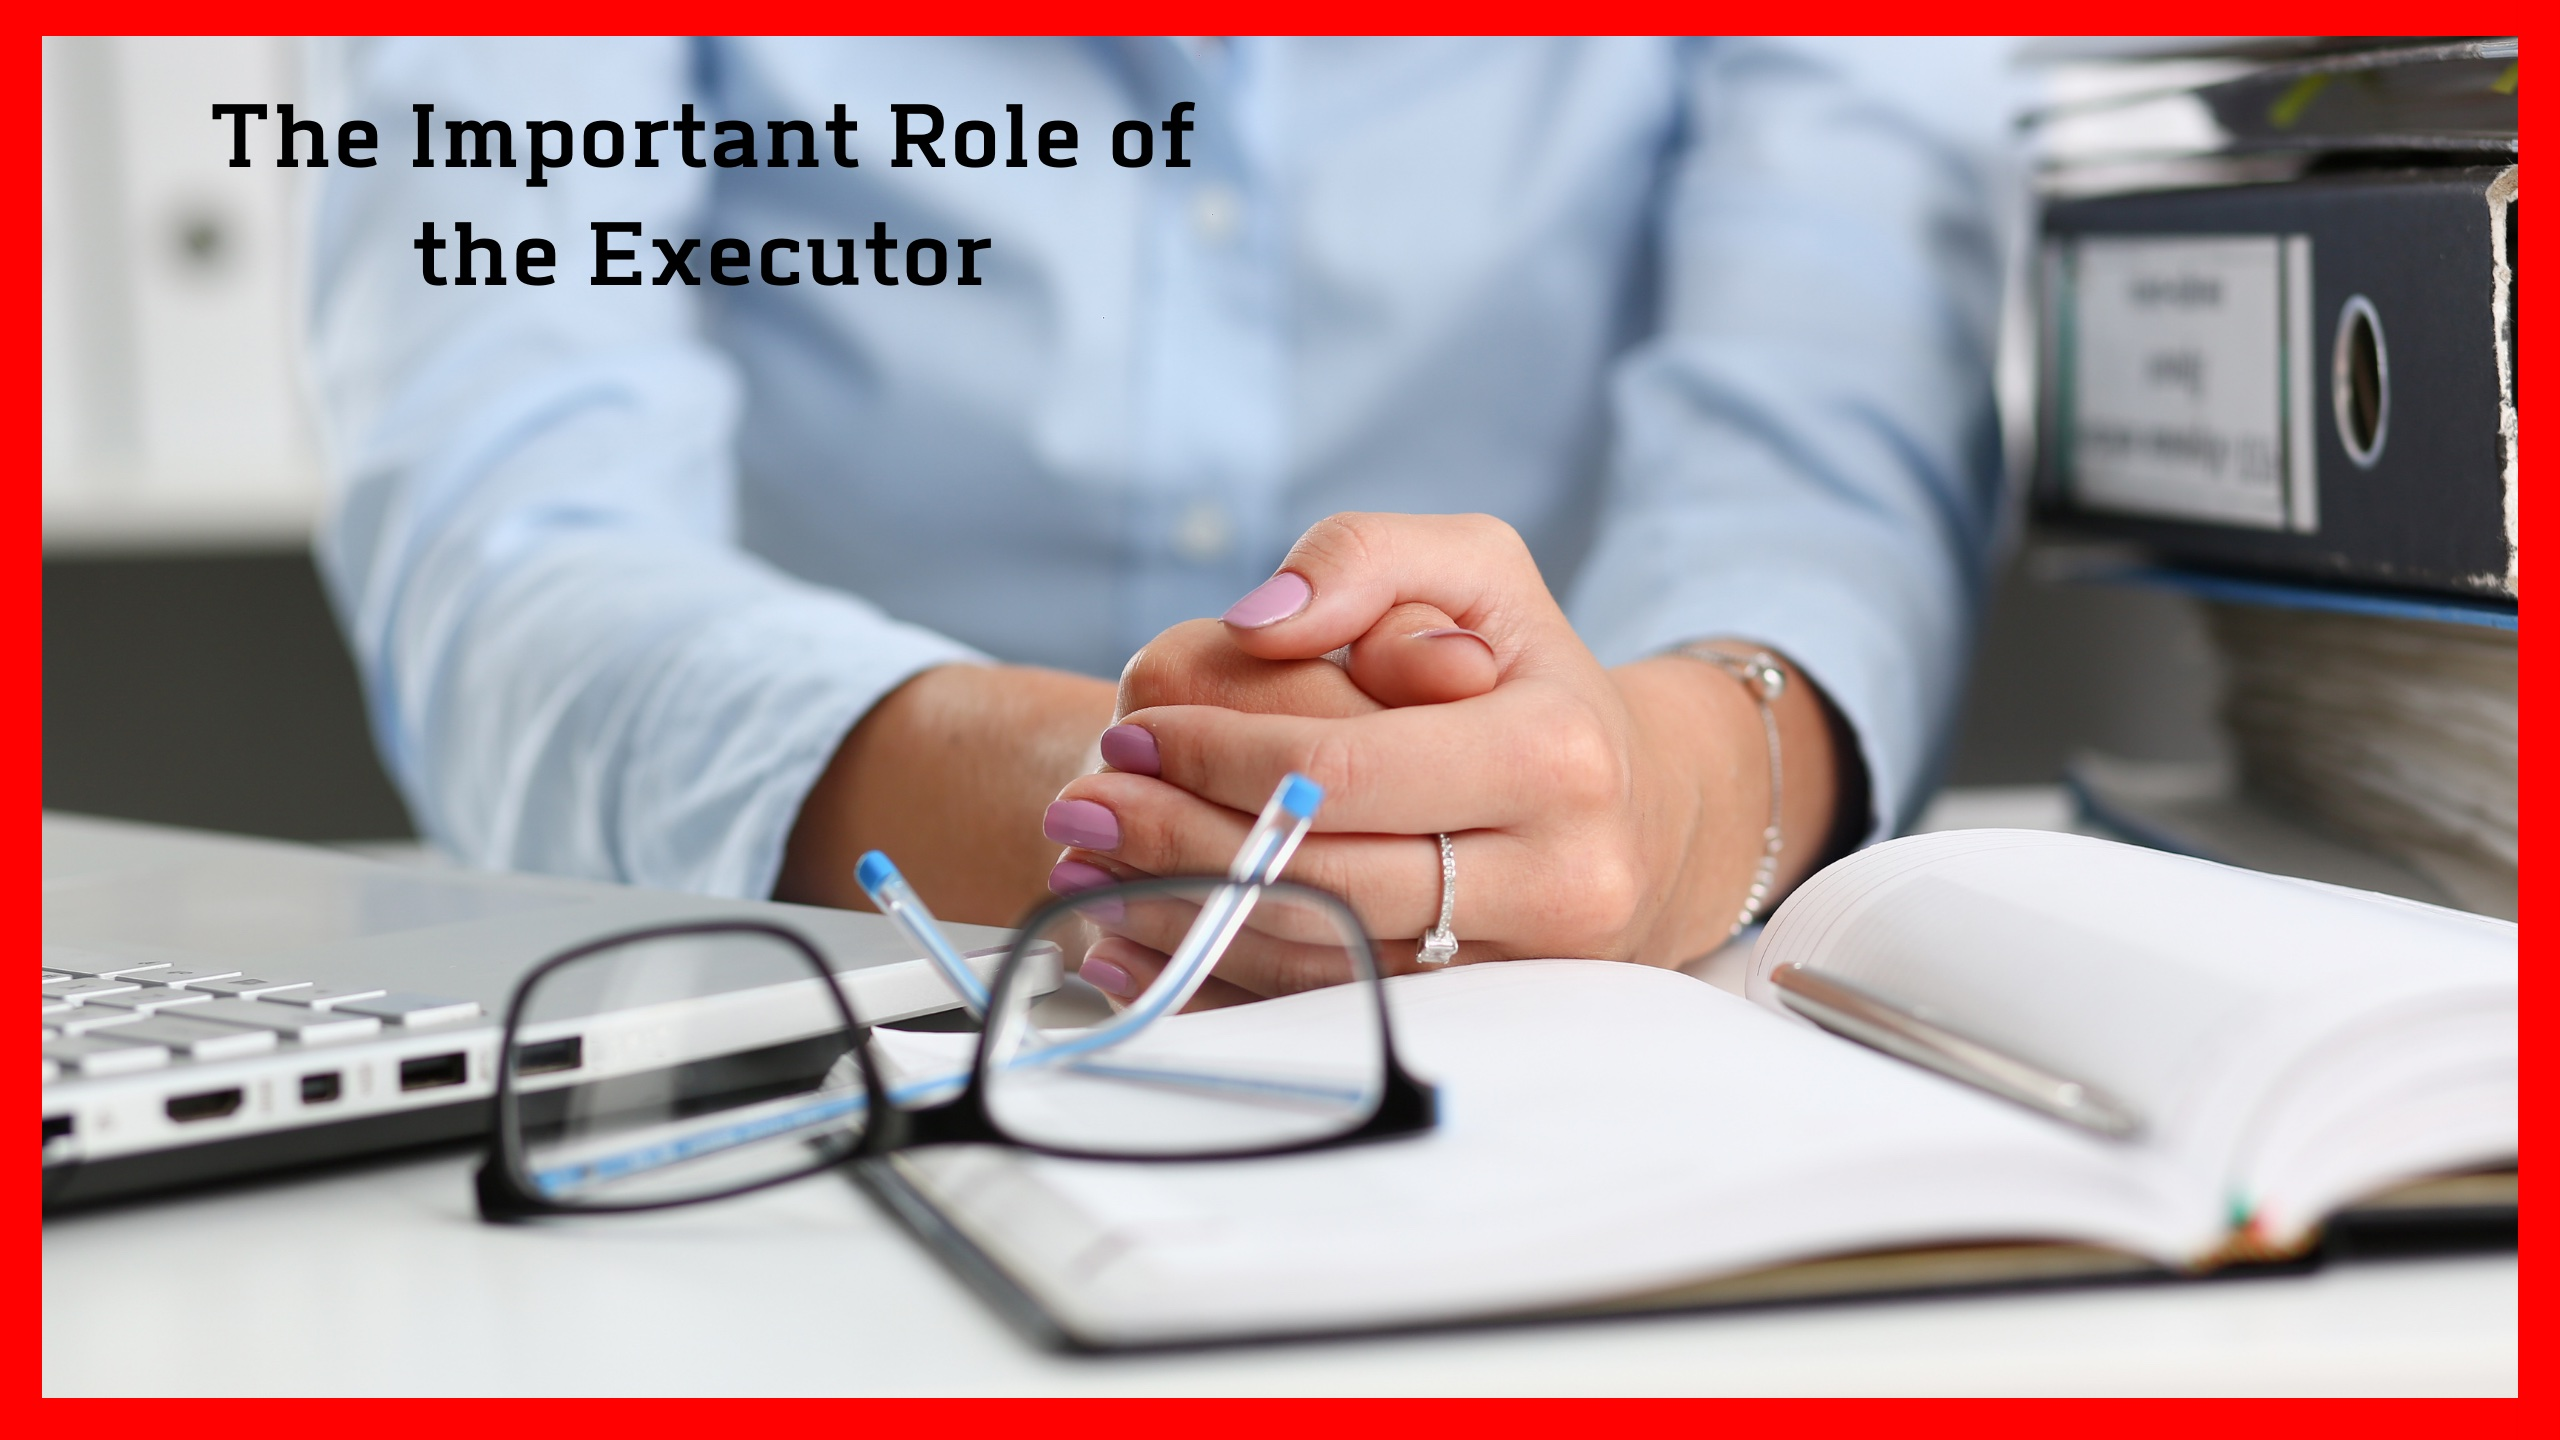 The Important Role of the Executor